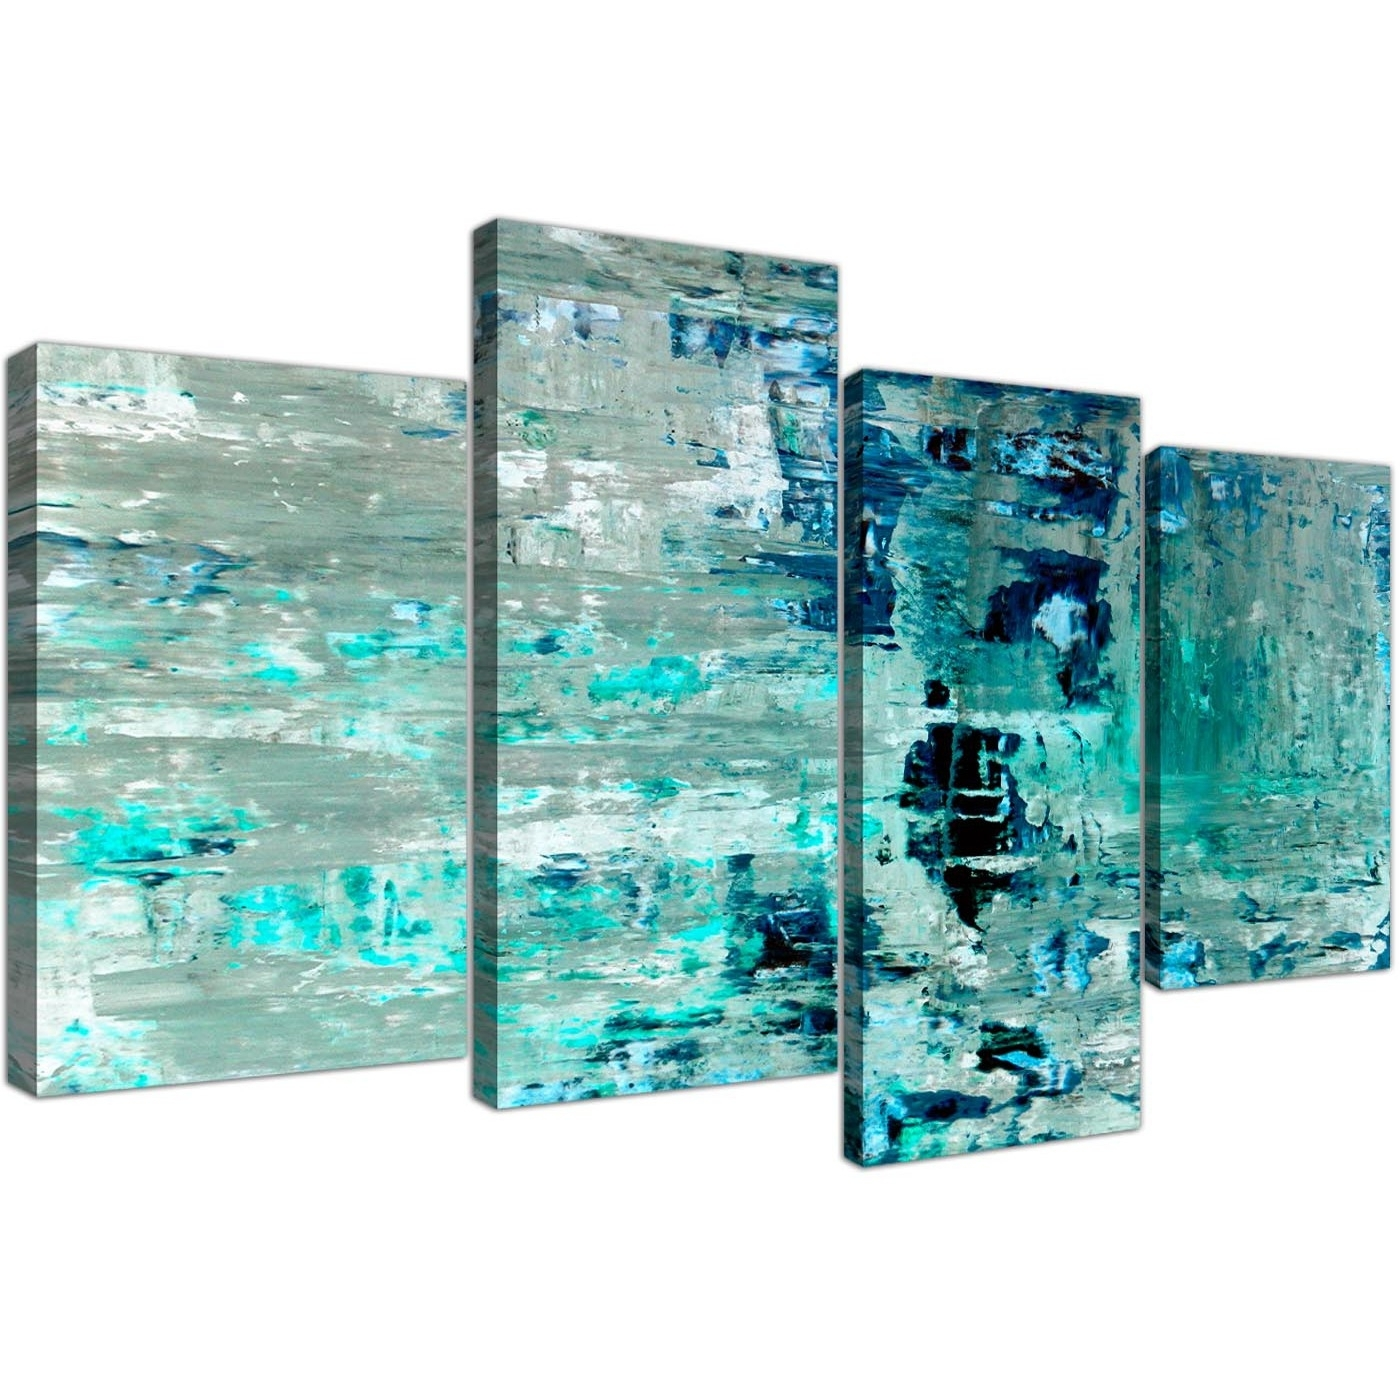 Large Turquoise Teal Abstract Painting Wall Art Print Canvas - Multi with regard to Newest Oversized Teal Canvas Wall Art